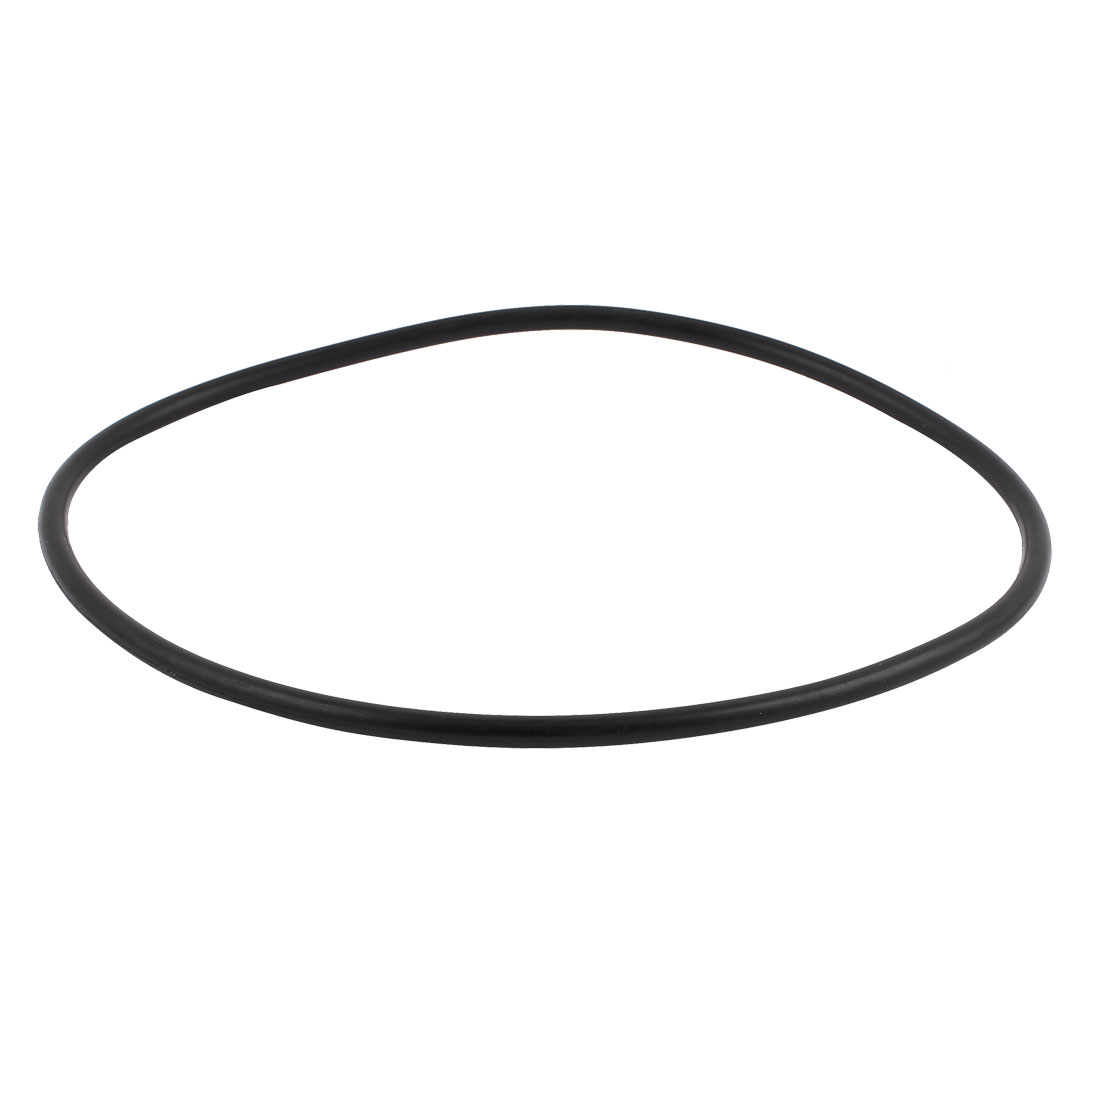 Black Universal O-Ring 265mm x 8.6mm BUNA-N Material Oil Seal Washers Grommets